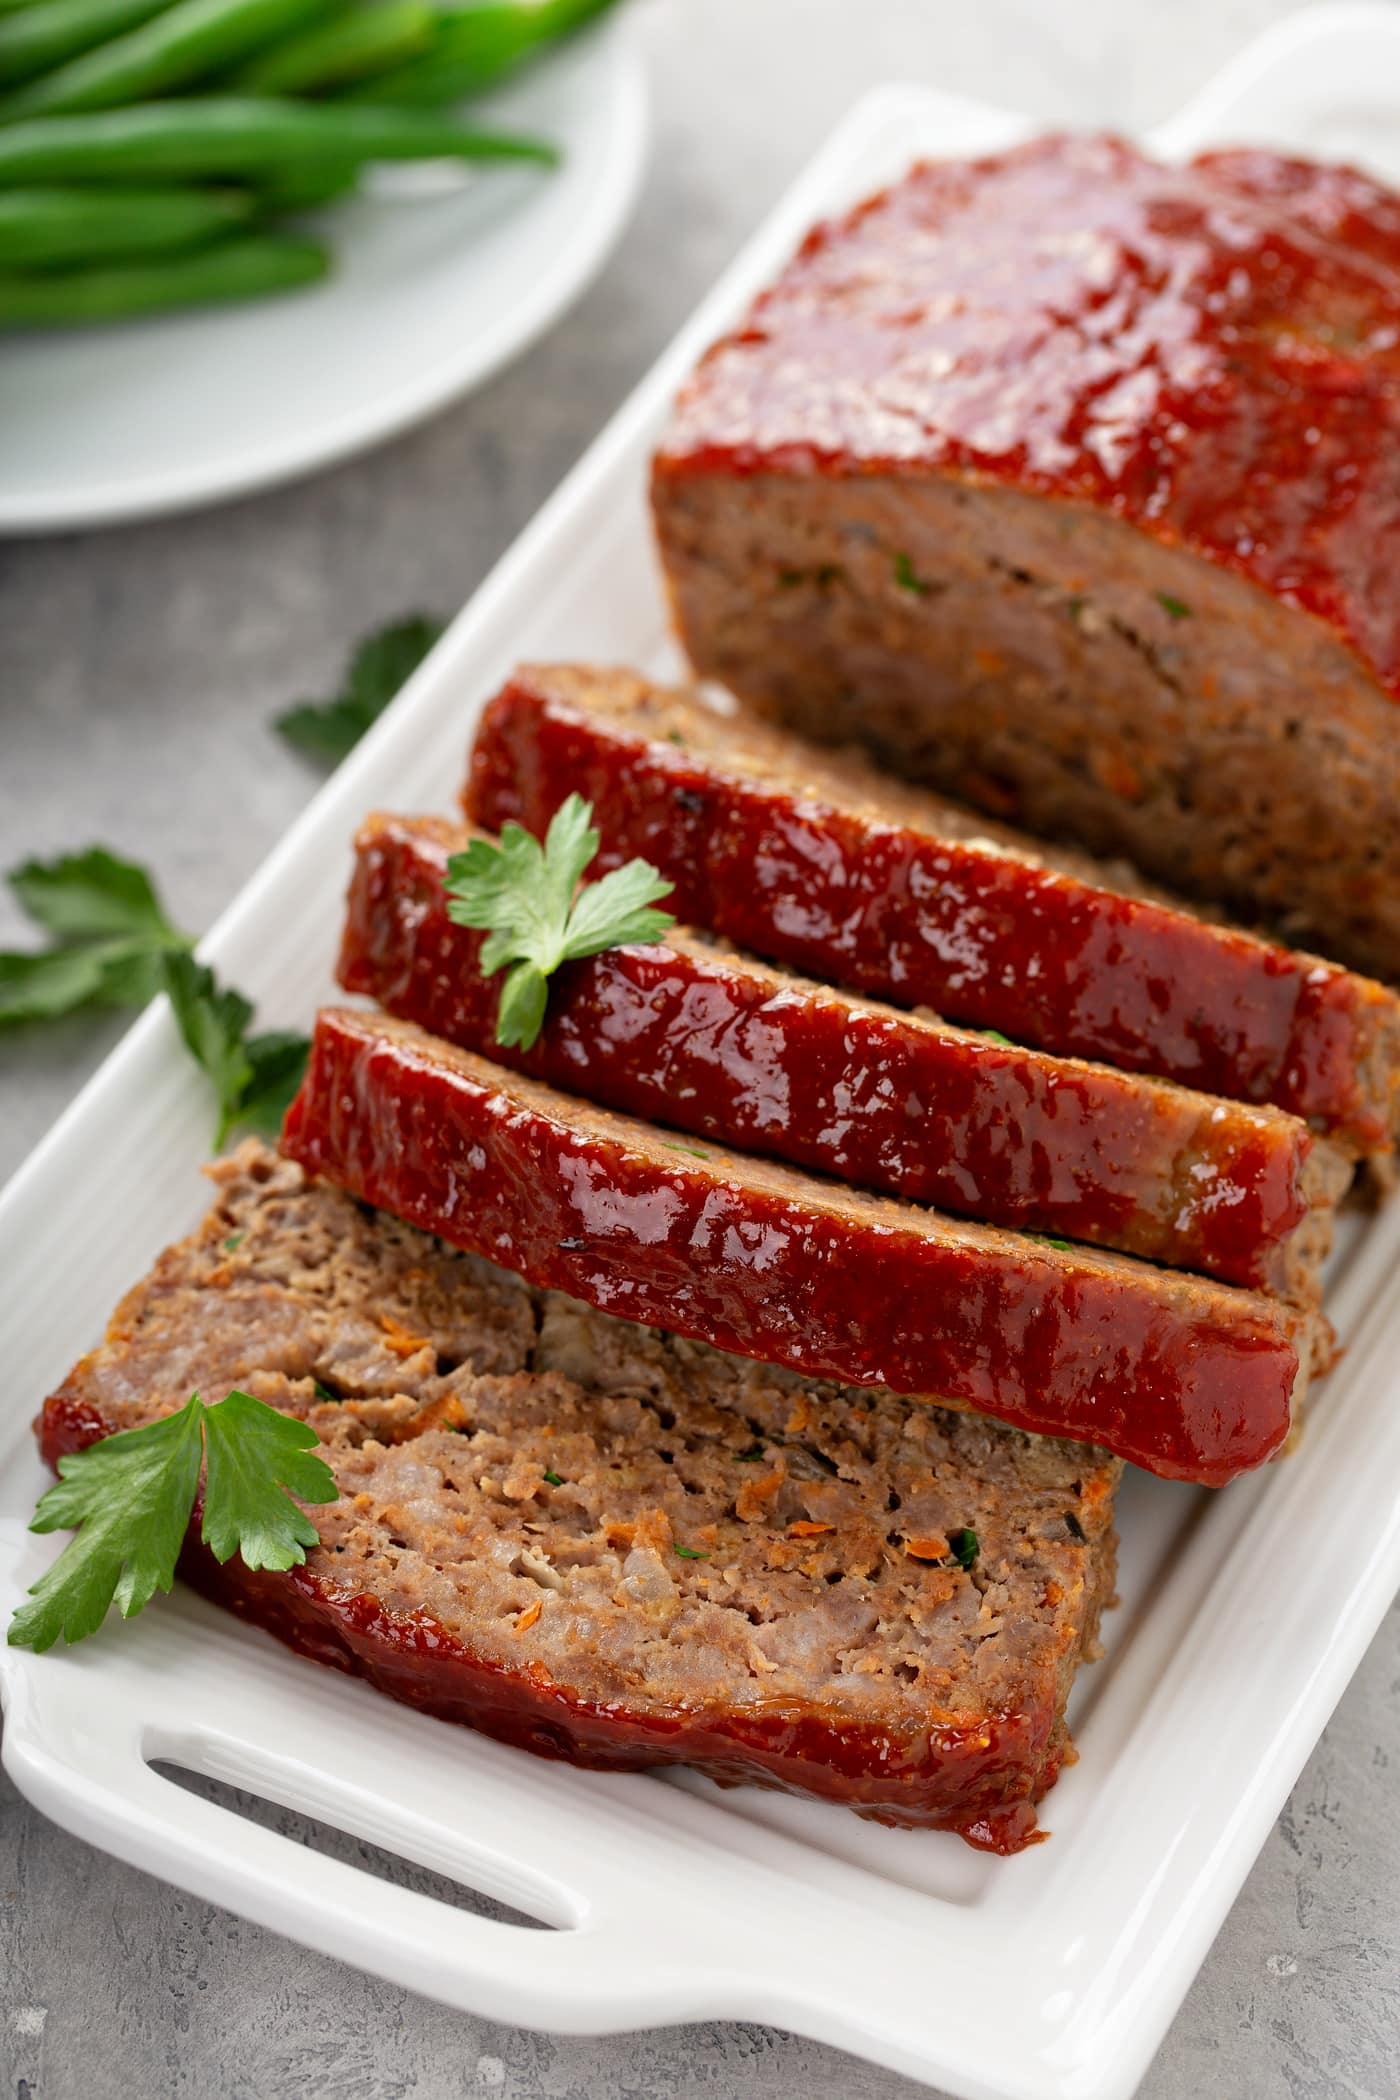 A tray holding meatloaf that has four slices cut, sprinkled with parsley leaves